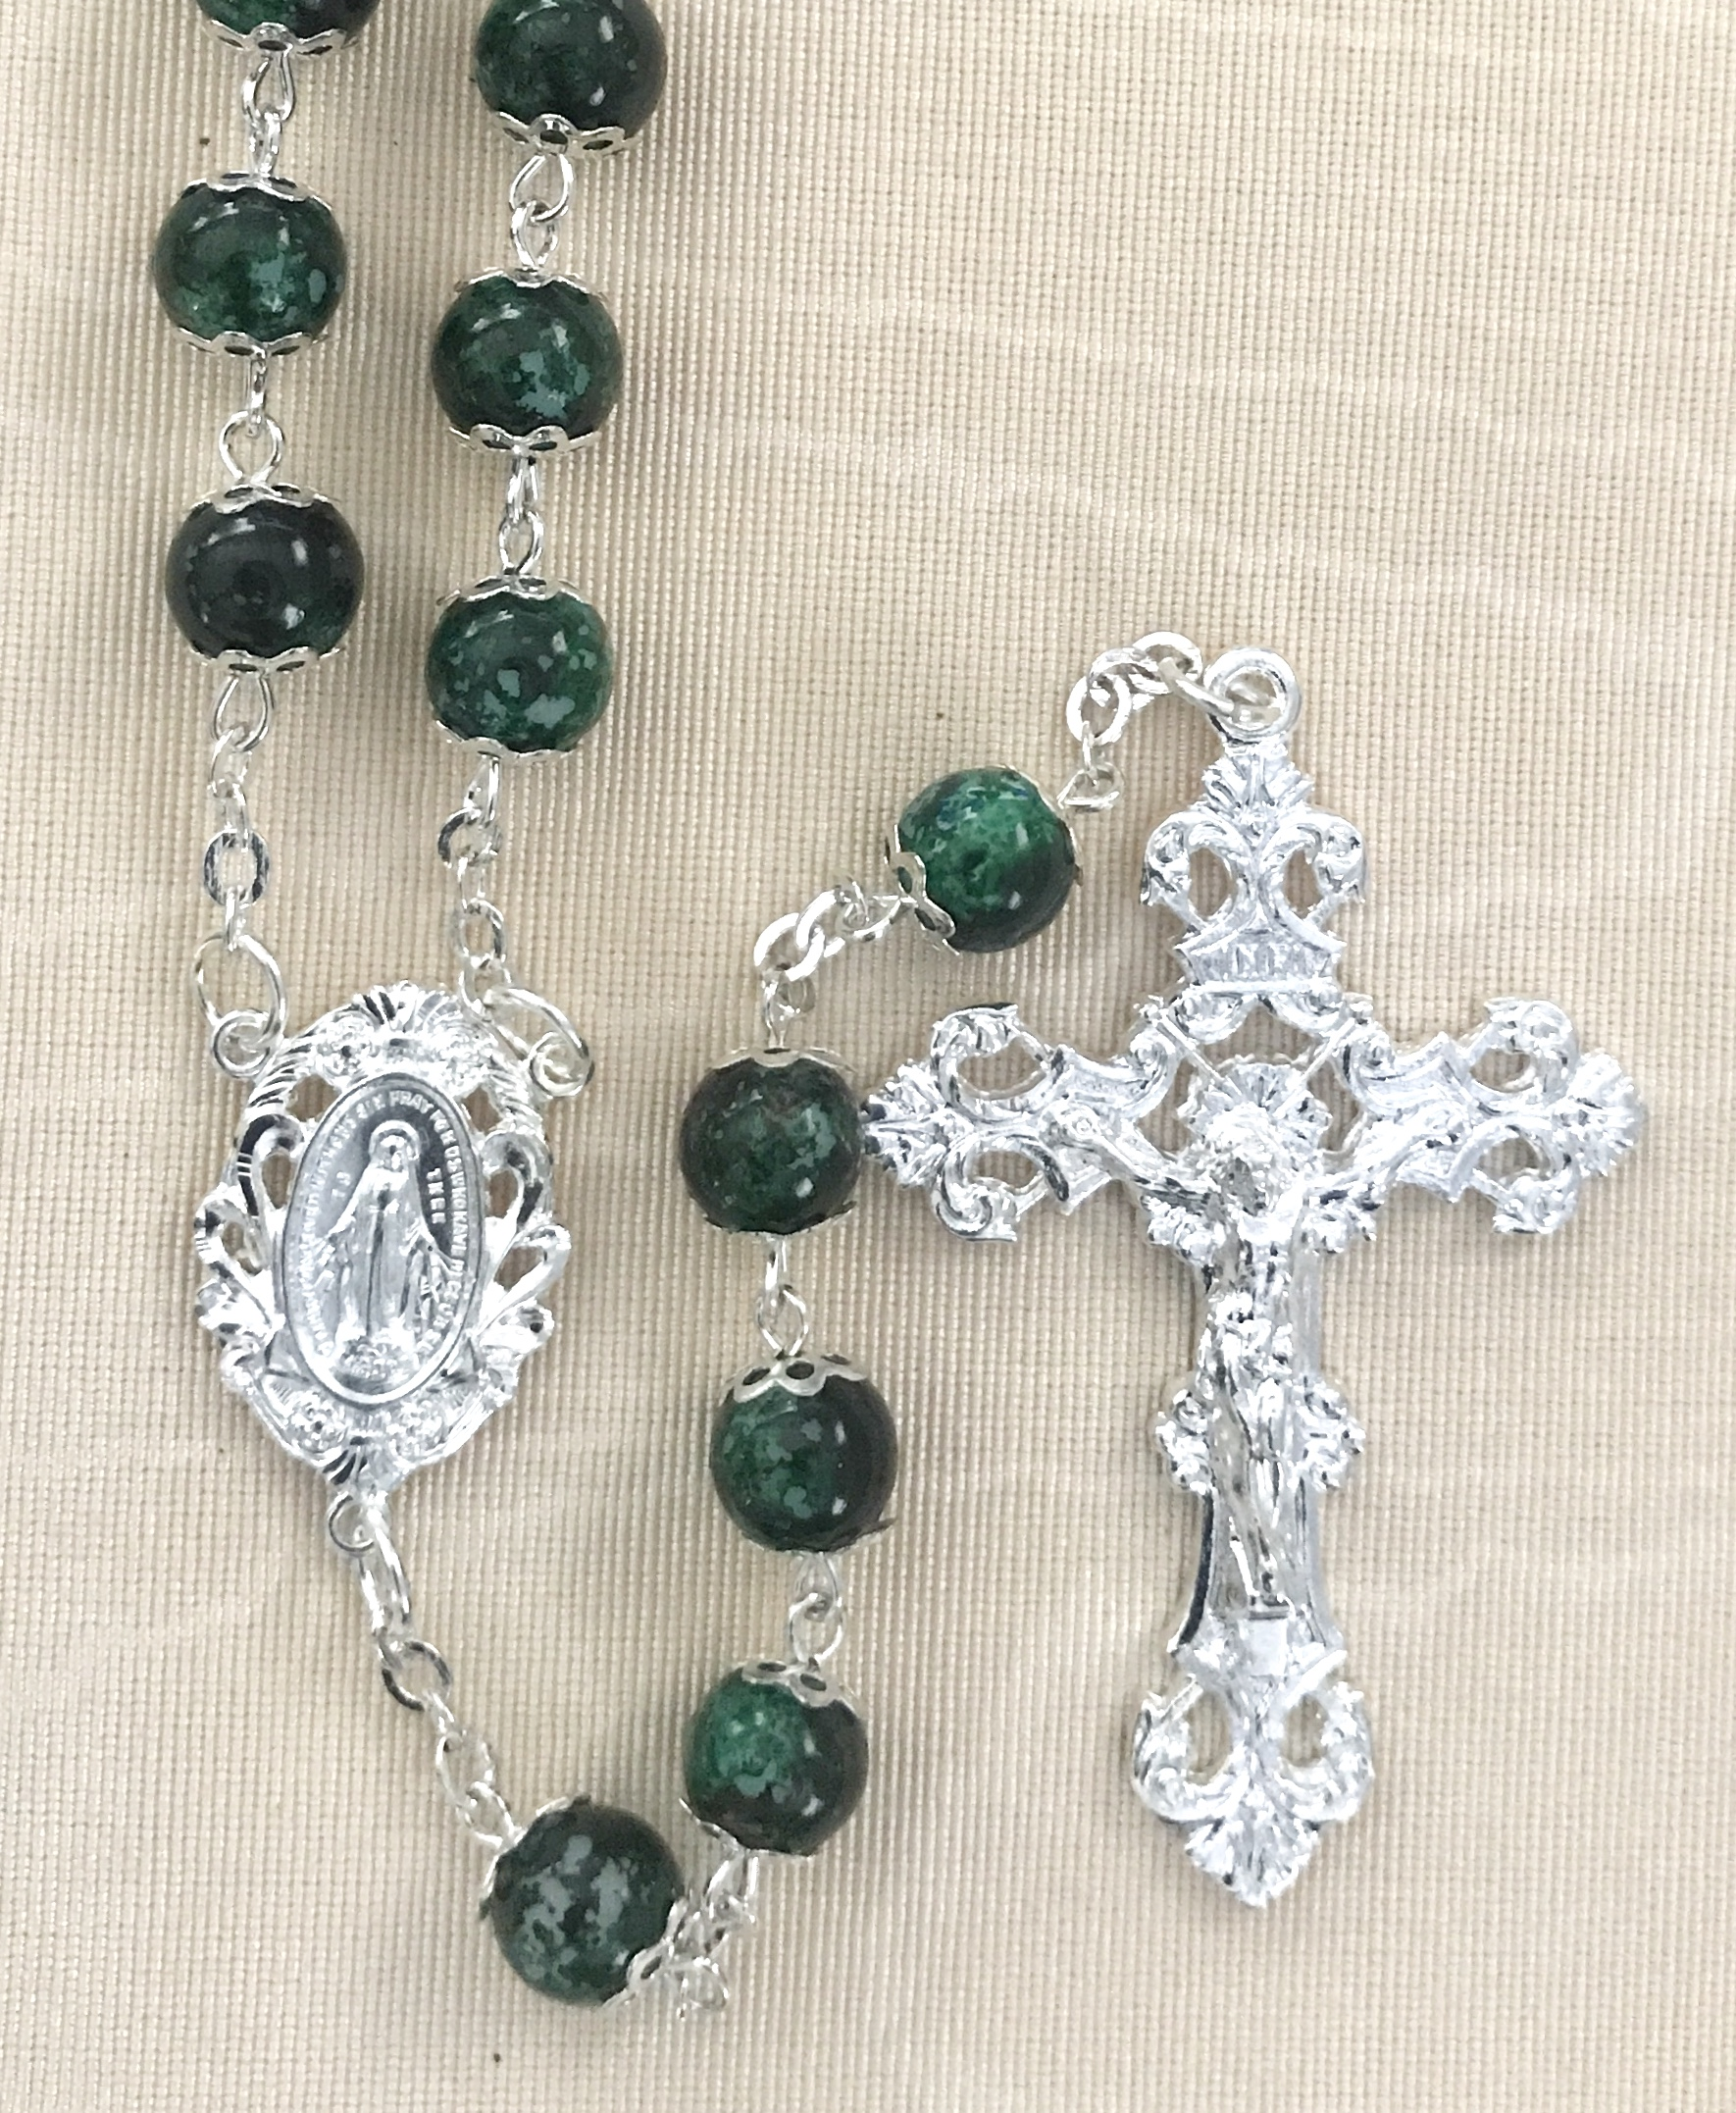 8mm EMERALD DOUBLE CAPPED ROSARY WITH STERLING SILVER PLATED CRUCIFIX AND CENTER GIFT BOXED